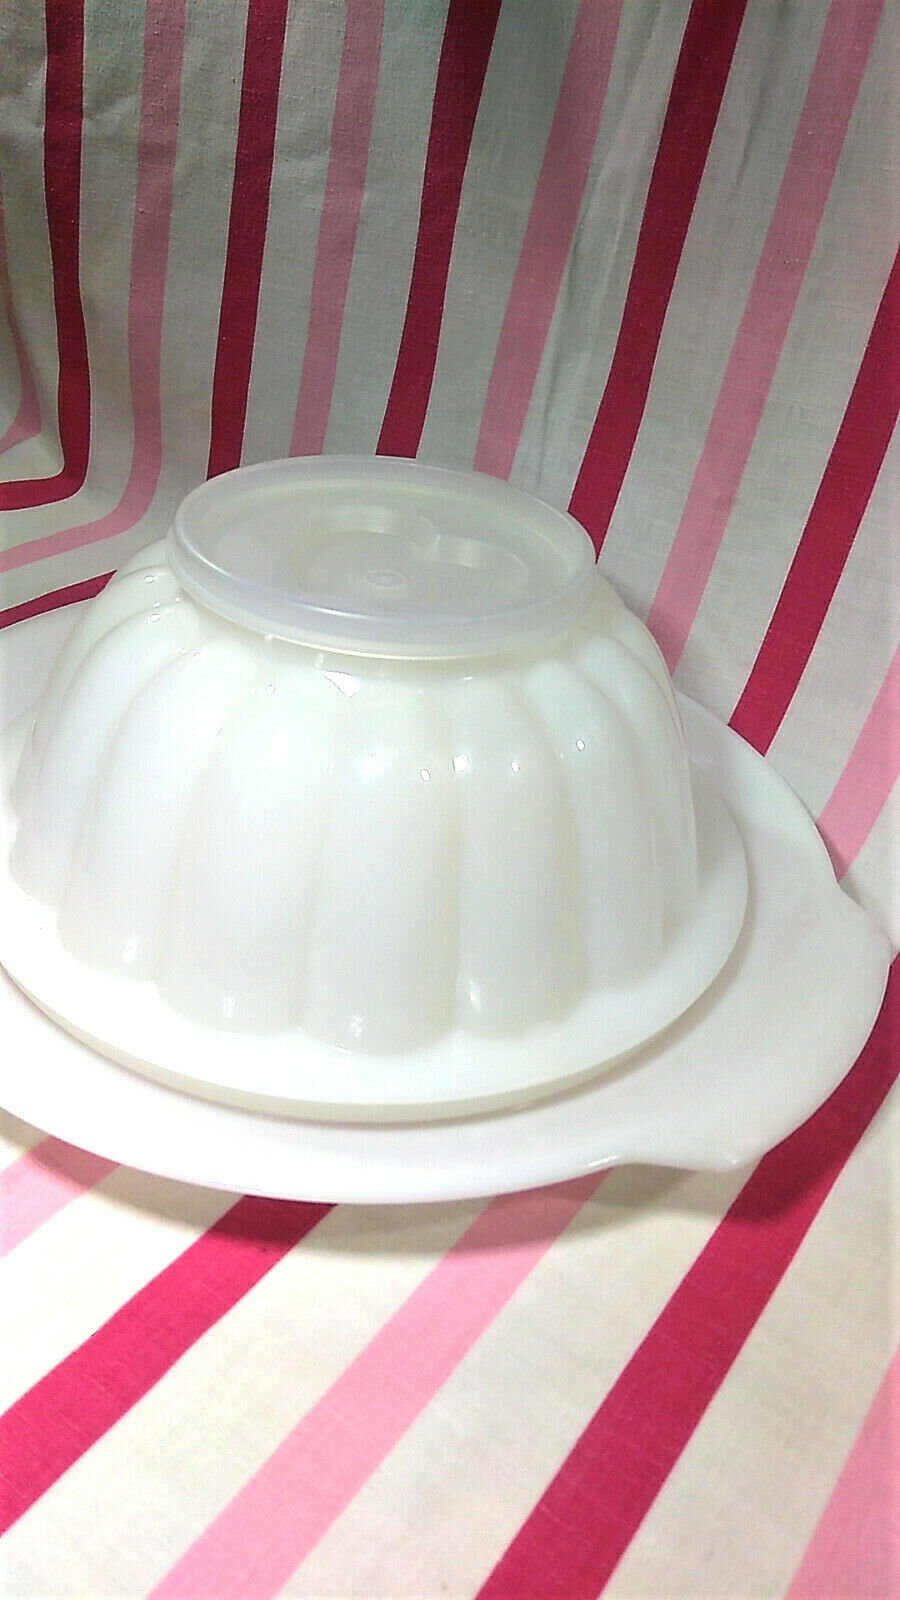 FUN Vintage Tupperware Jel-N-Serve Mold With White Tray and Heart Design Top image 3